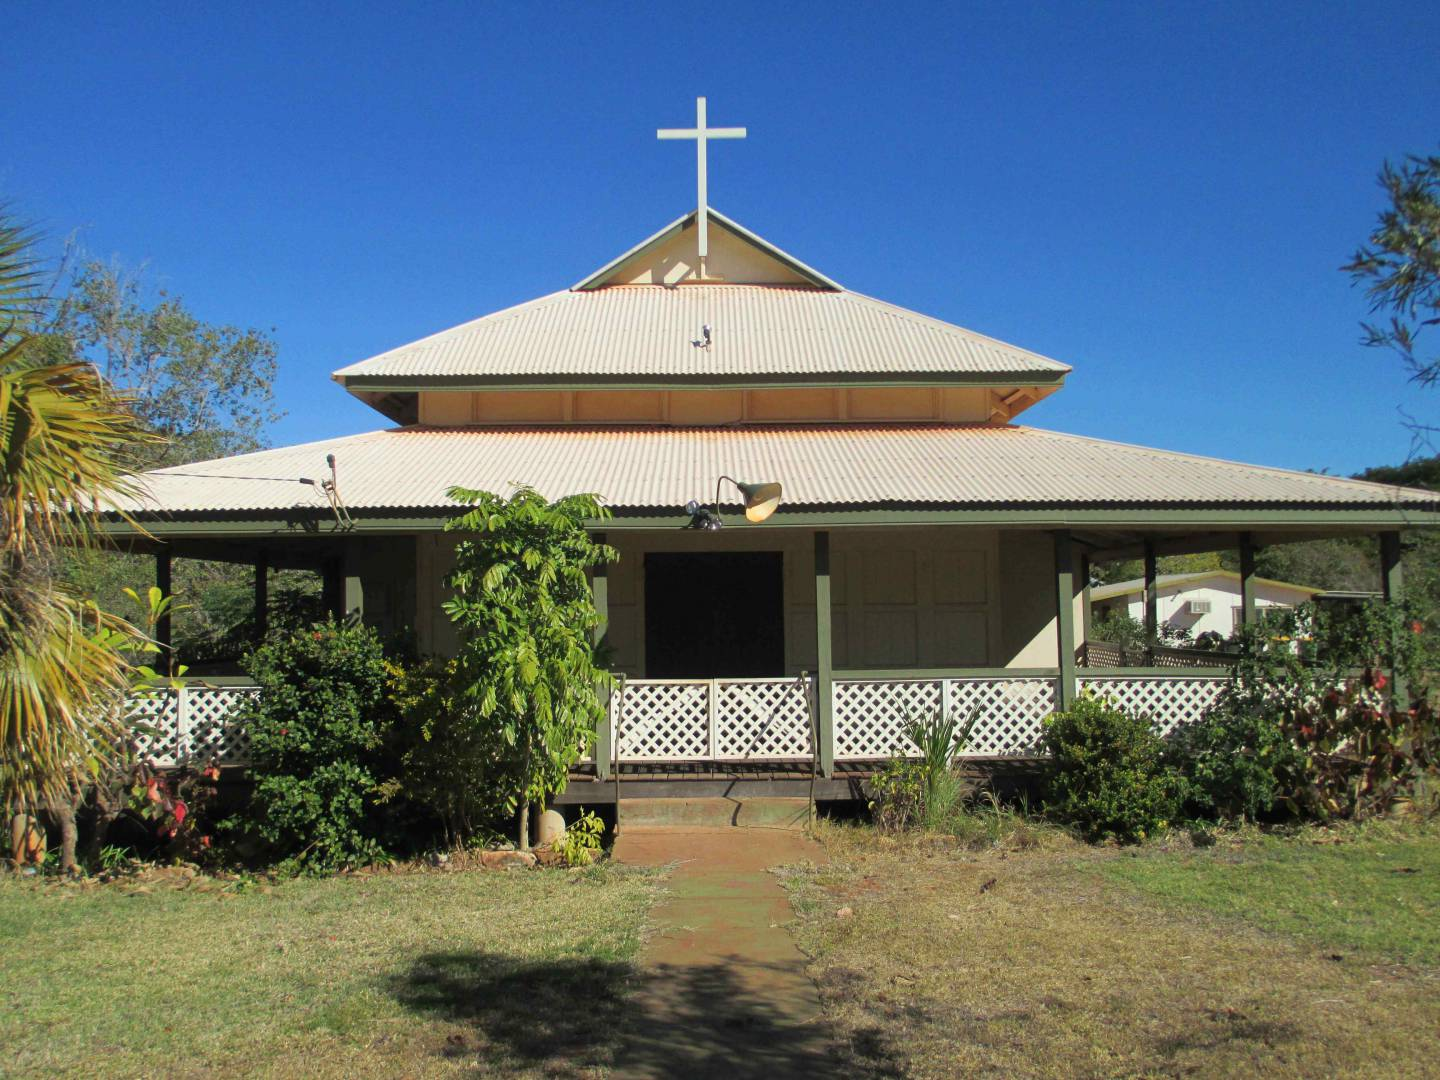 Broome Uniting Church